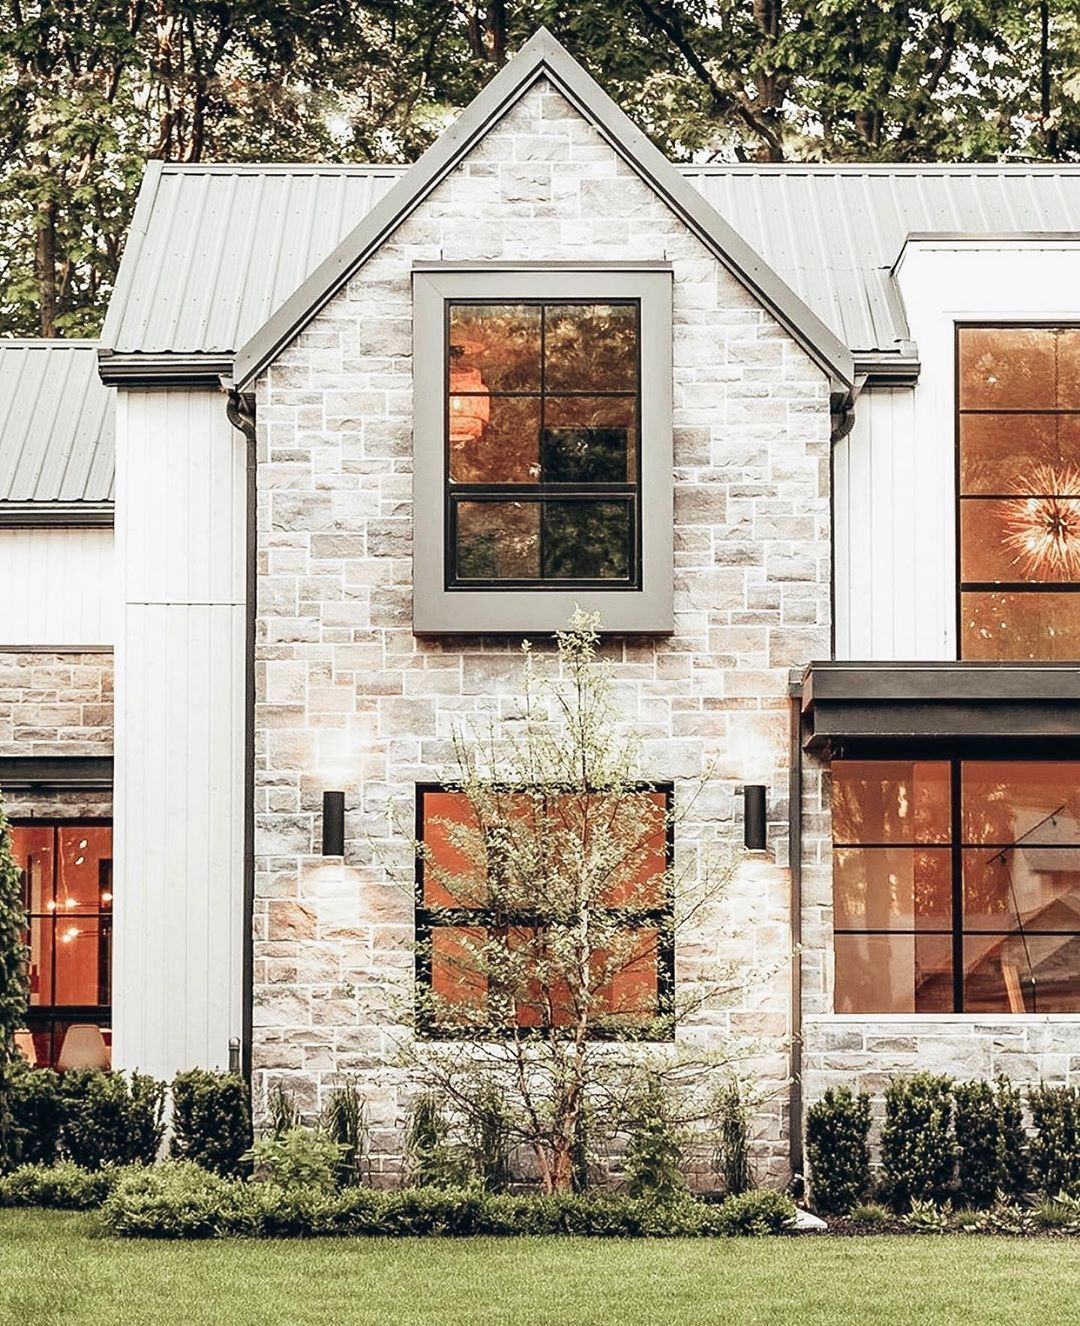 Unique Home Exterior Design: Pin By Jennifer Binkley On Dream Homes In 2020